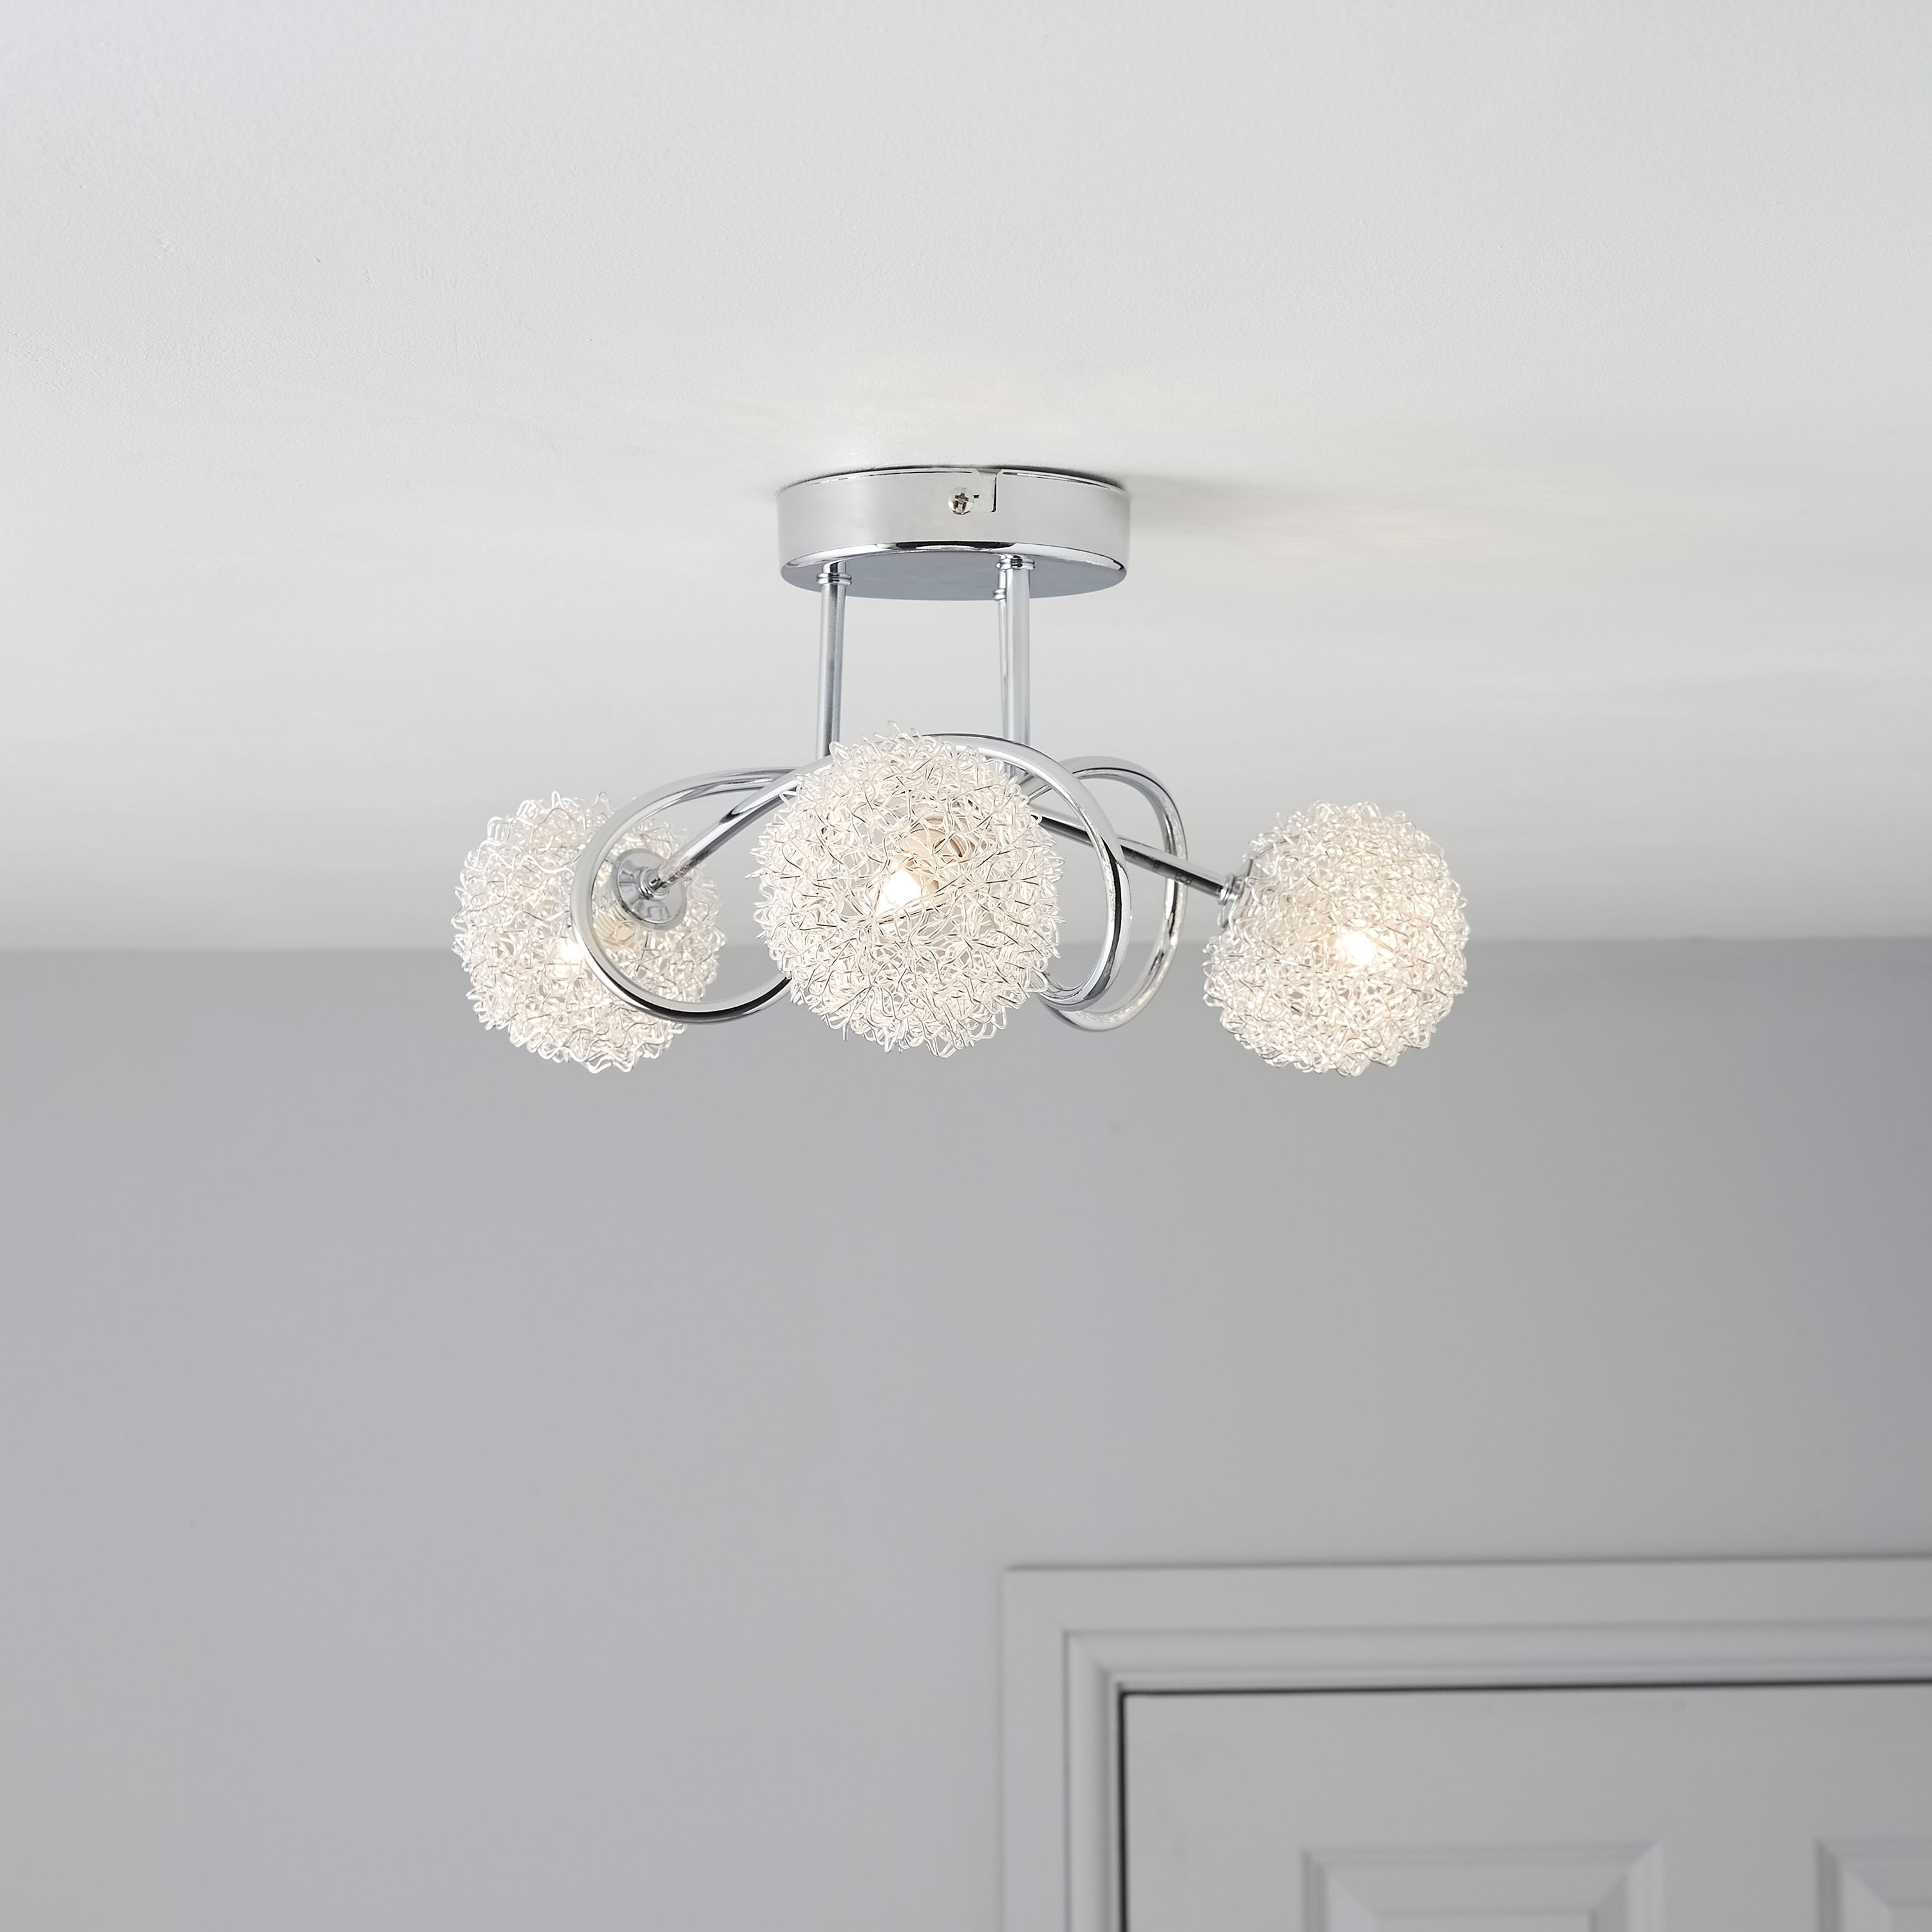 Bathroom ceiling lights b q - Pallas Chrome Effect 3 Lamp Ceiling Light